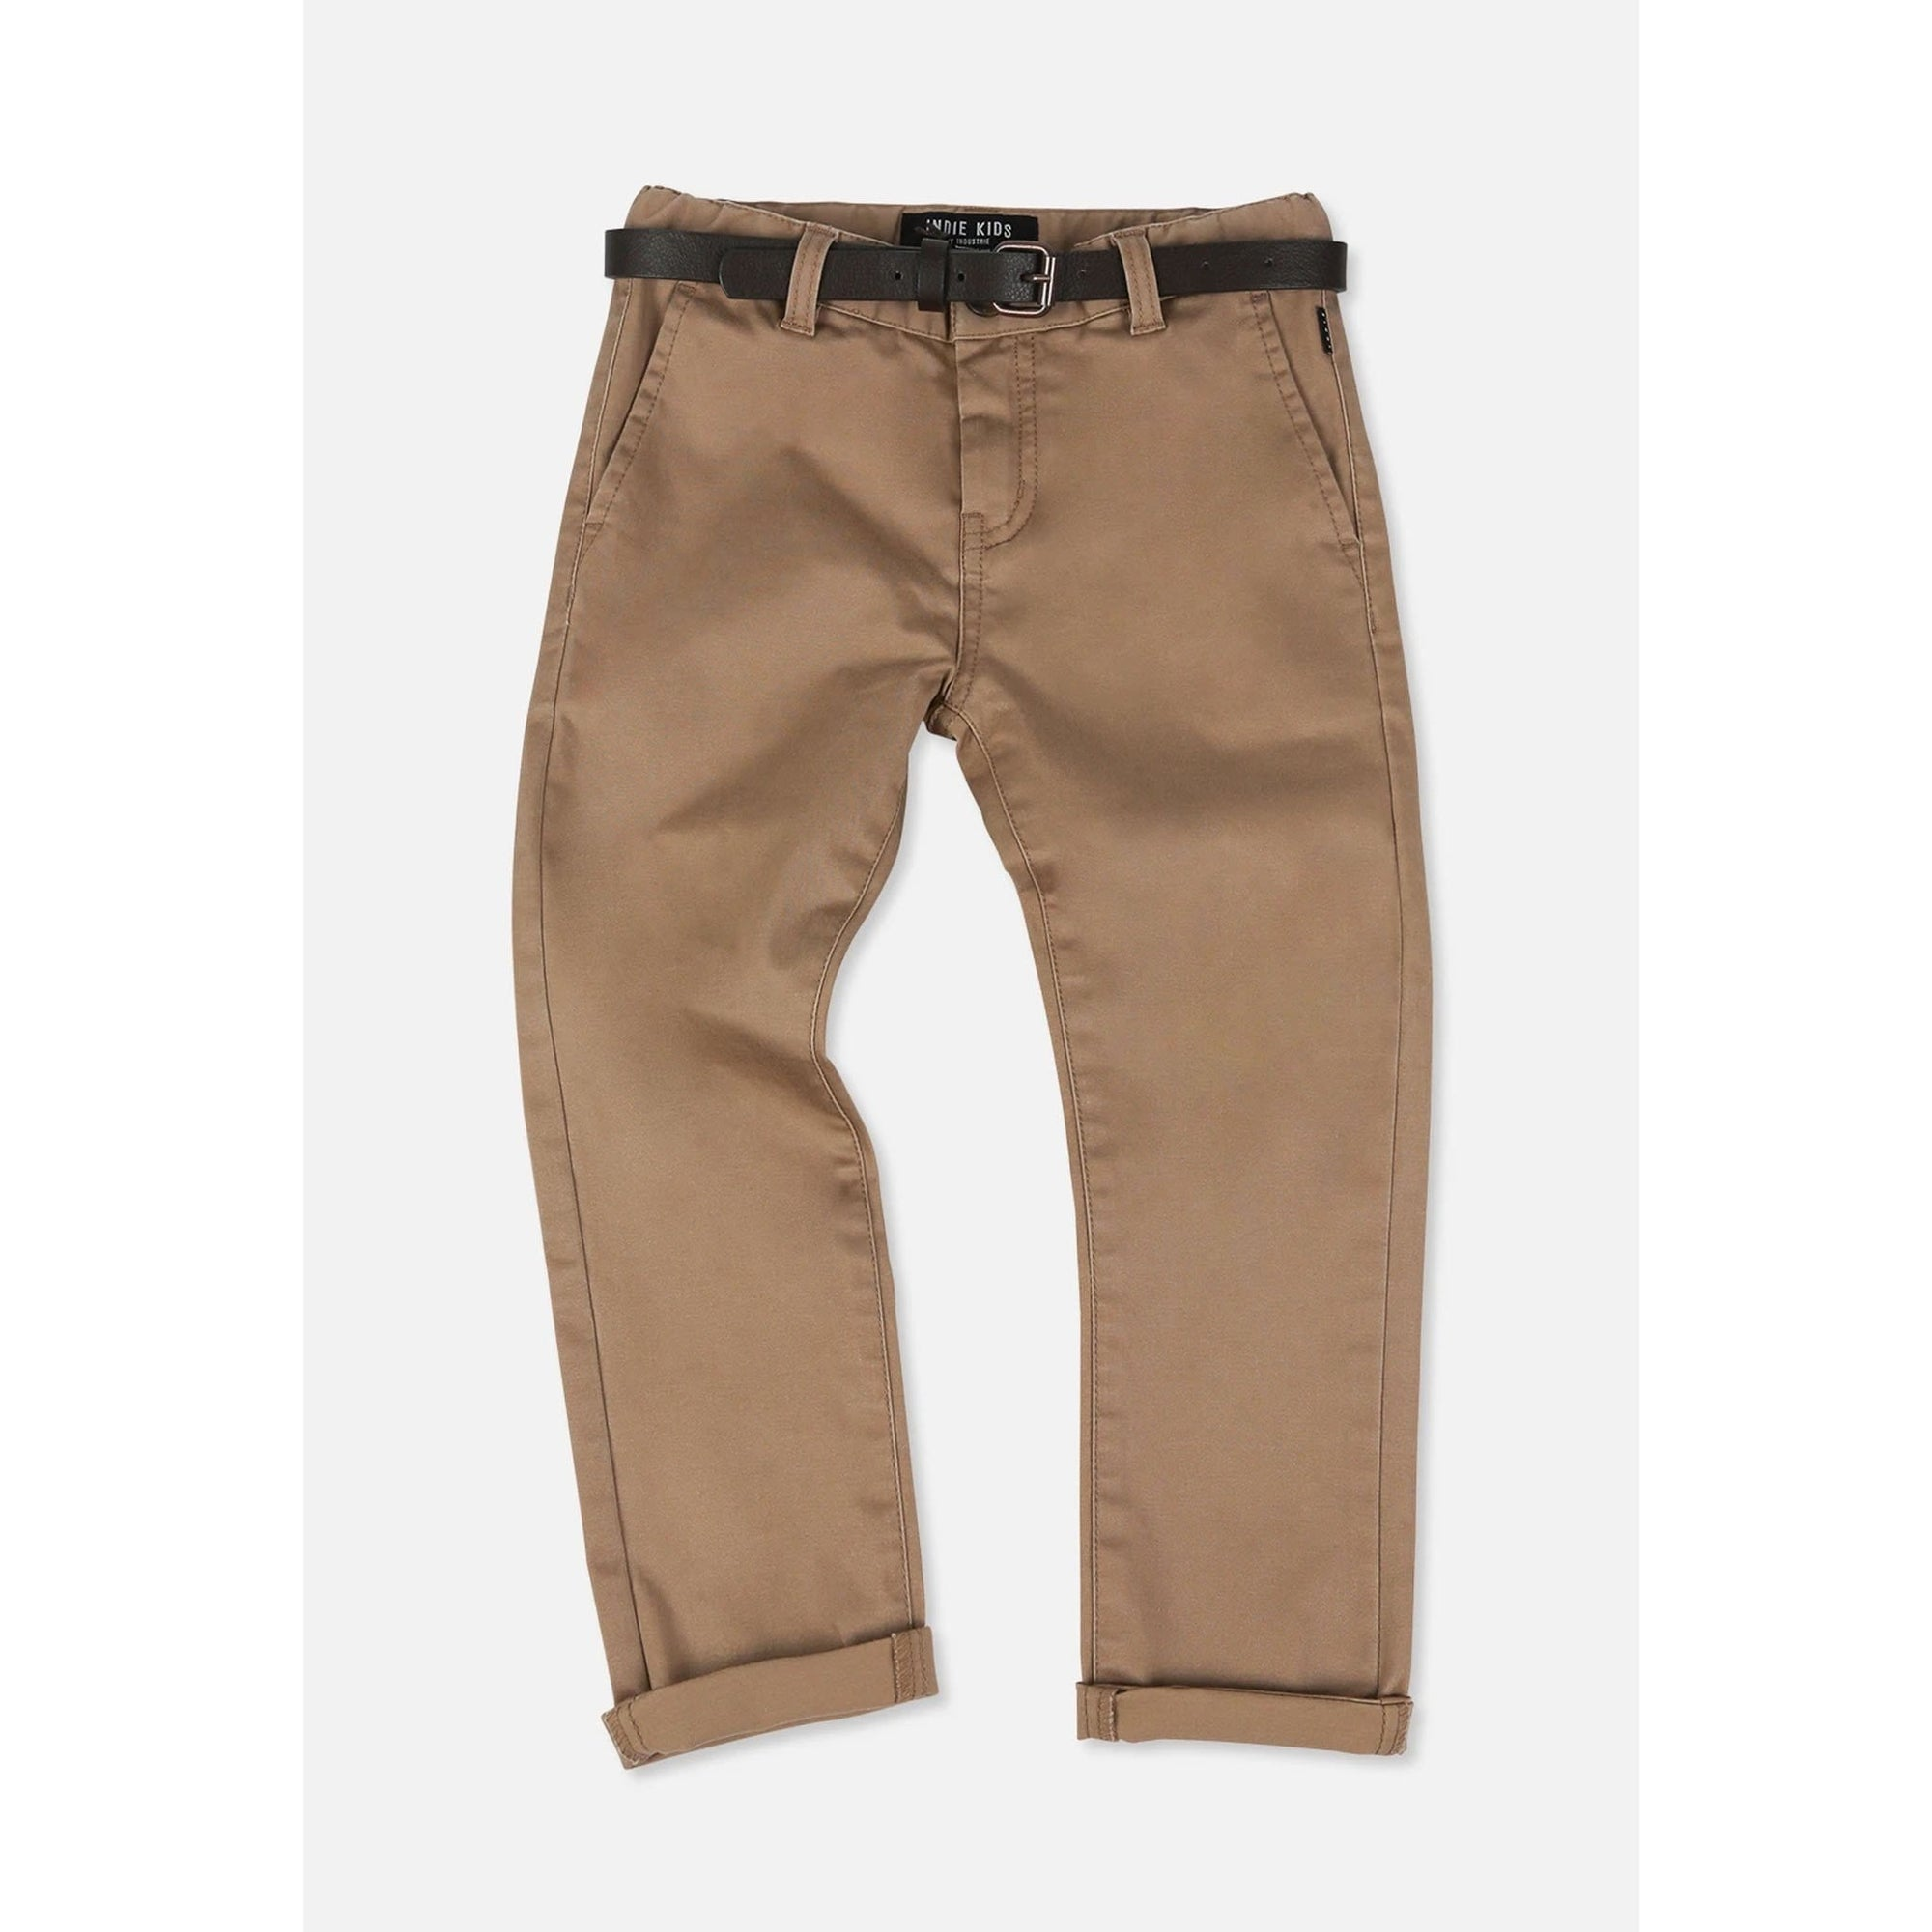 Industrie Kids Cuba Stretch Chino Caramel (4637821796483)